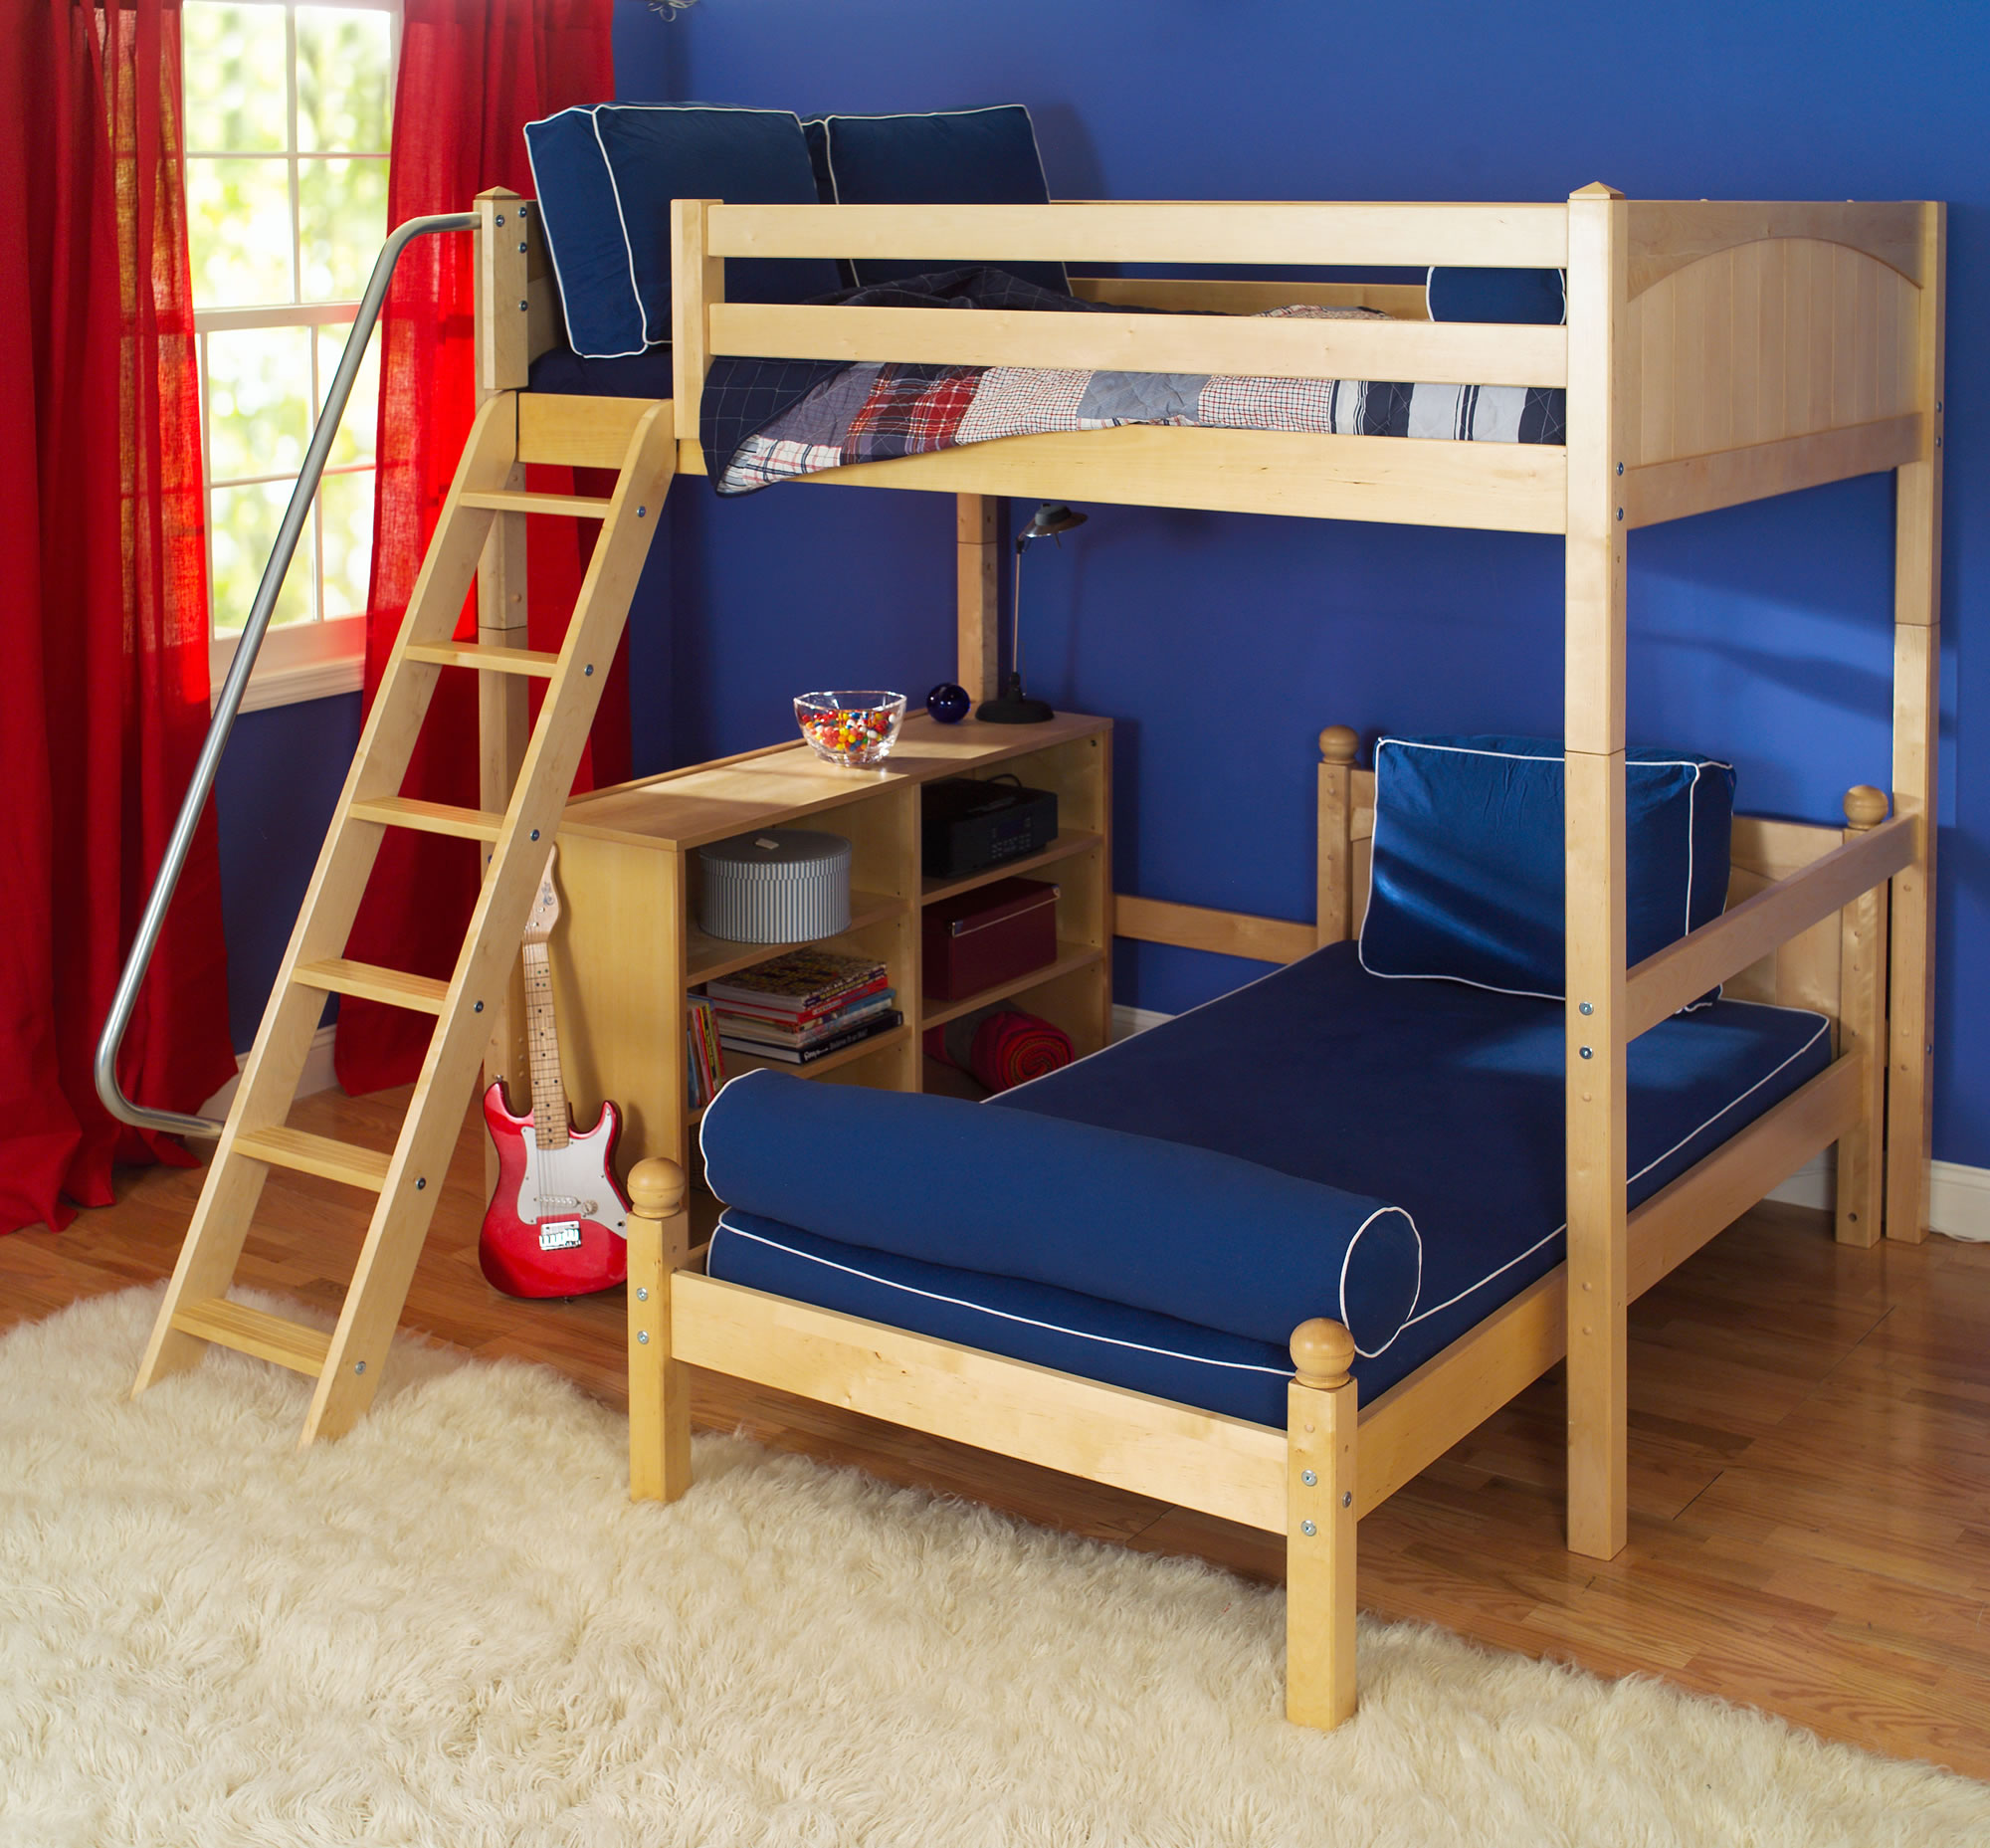 L shaped bunk bed plans bed plans diy blueprints for Bunk bed woodworking plans